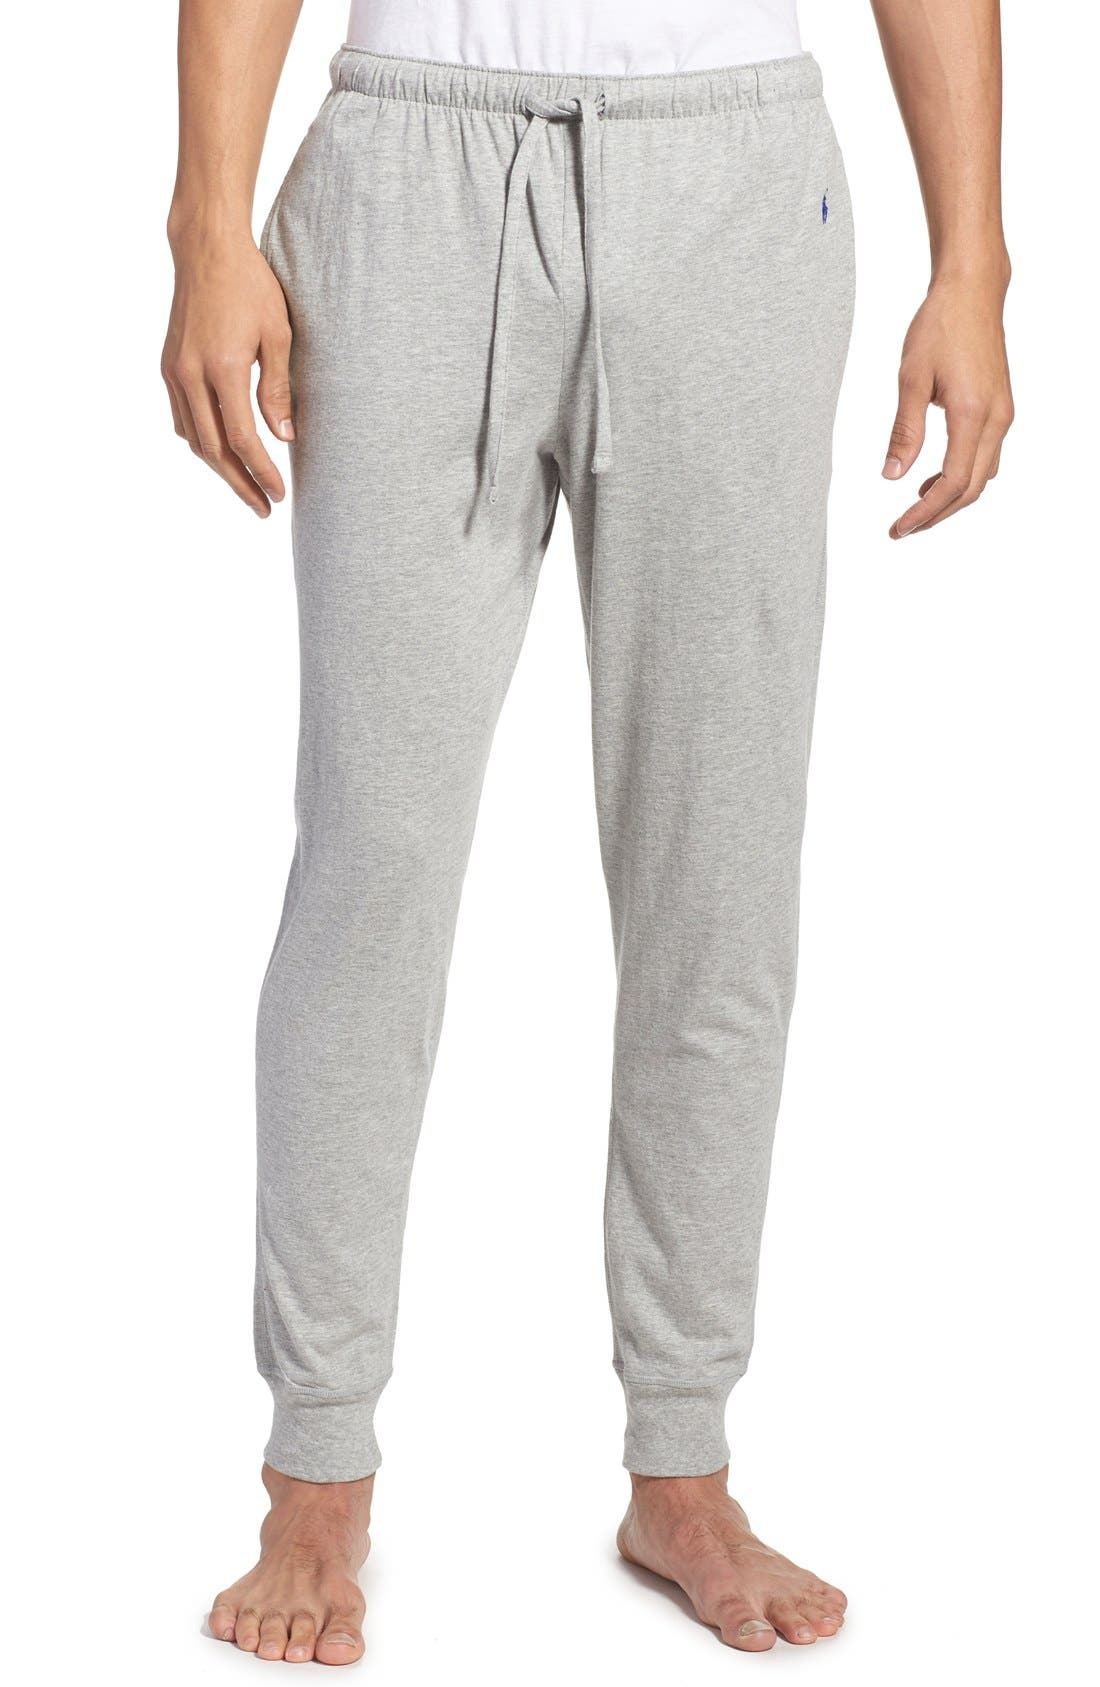 POLO RALPH LAUREN Relaxed Fit Jogger Pants, Main, color, ANDOVER HEATHER